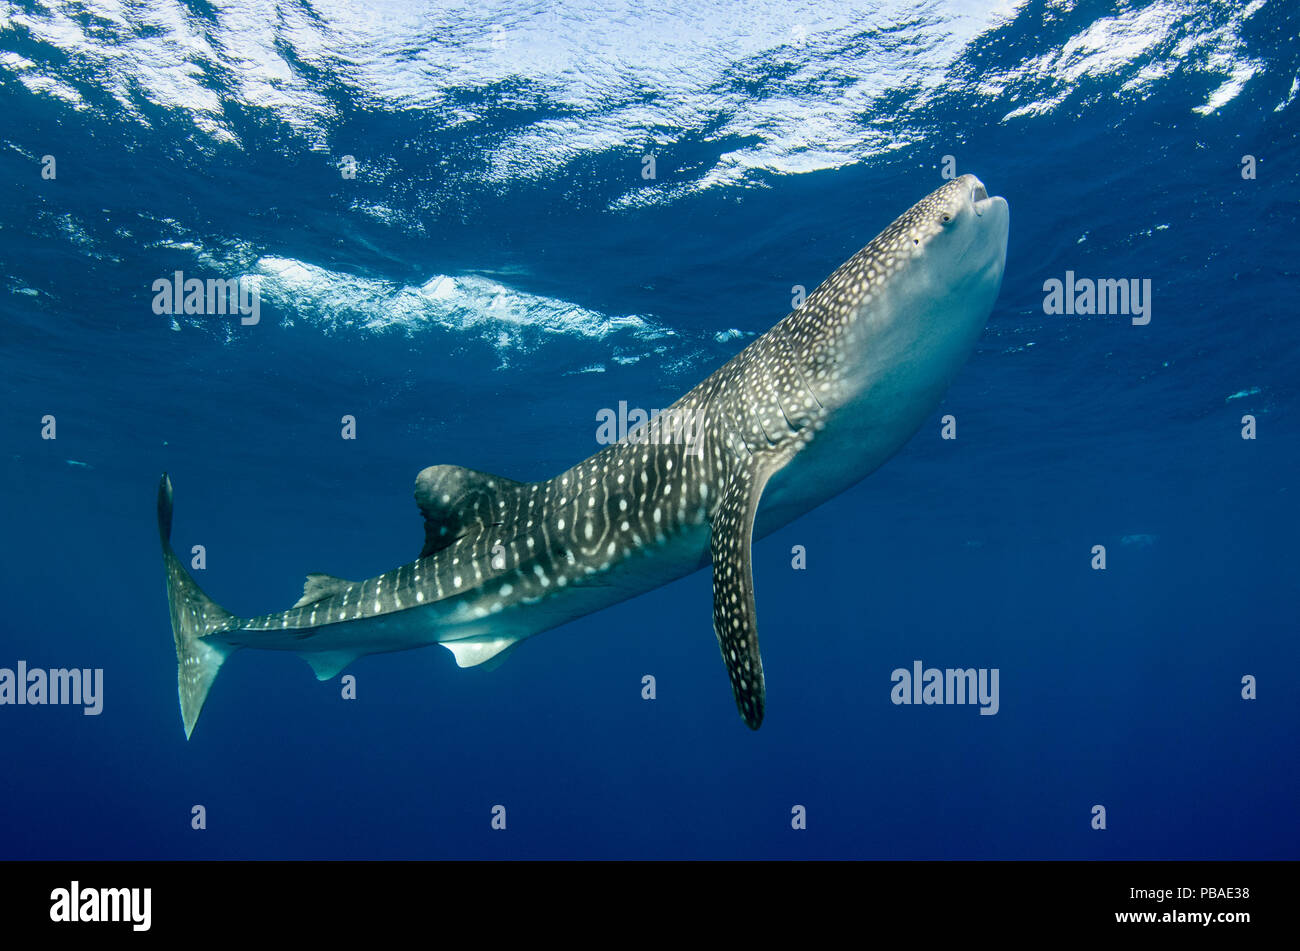 Whale shark (Rhincodon typus) Cenderawasih Bay, West Papua. Indonesia. - Stock Image